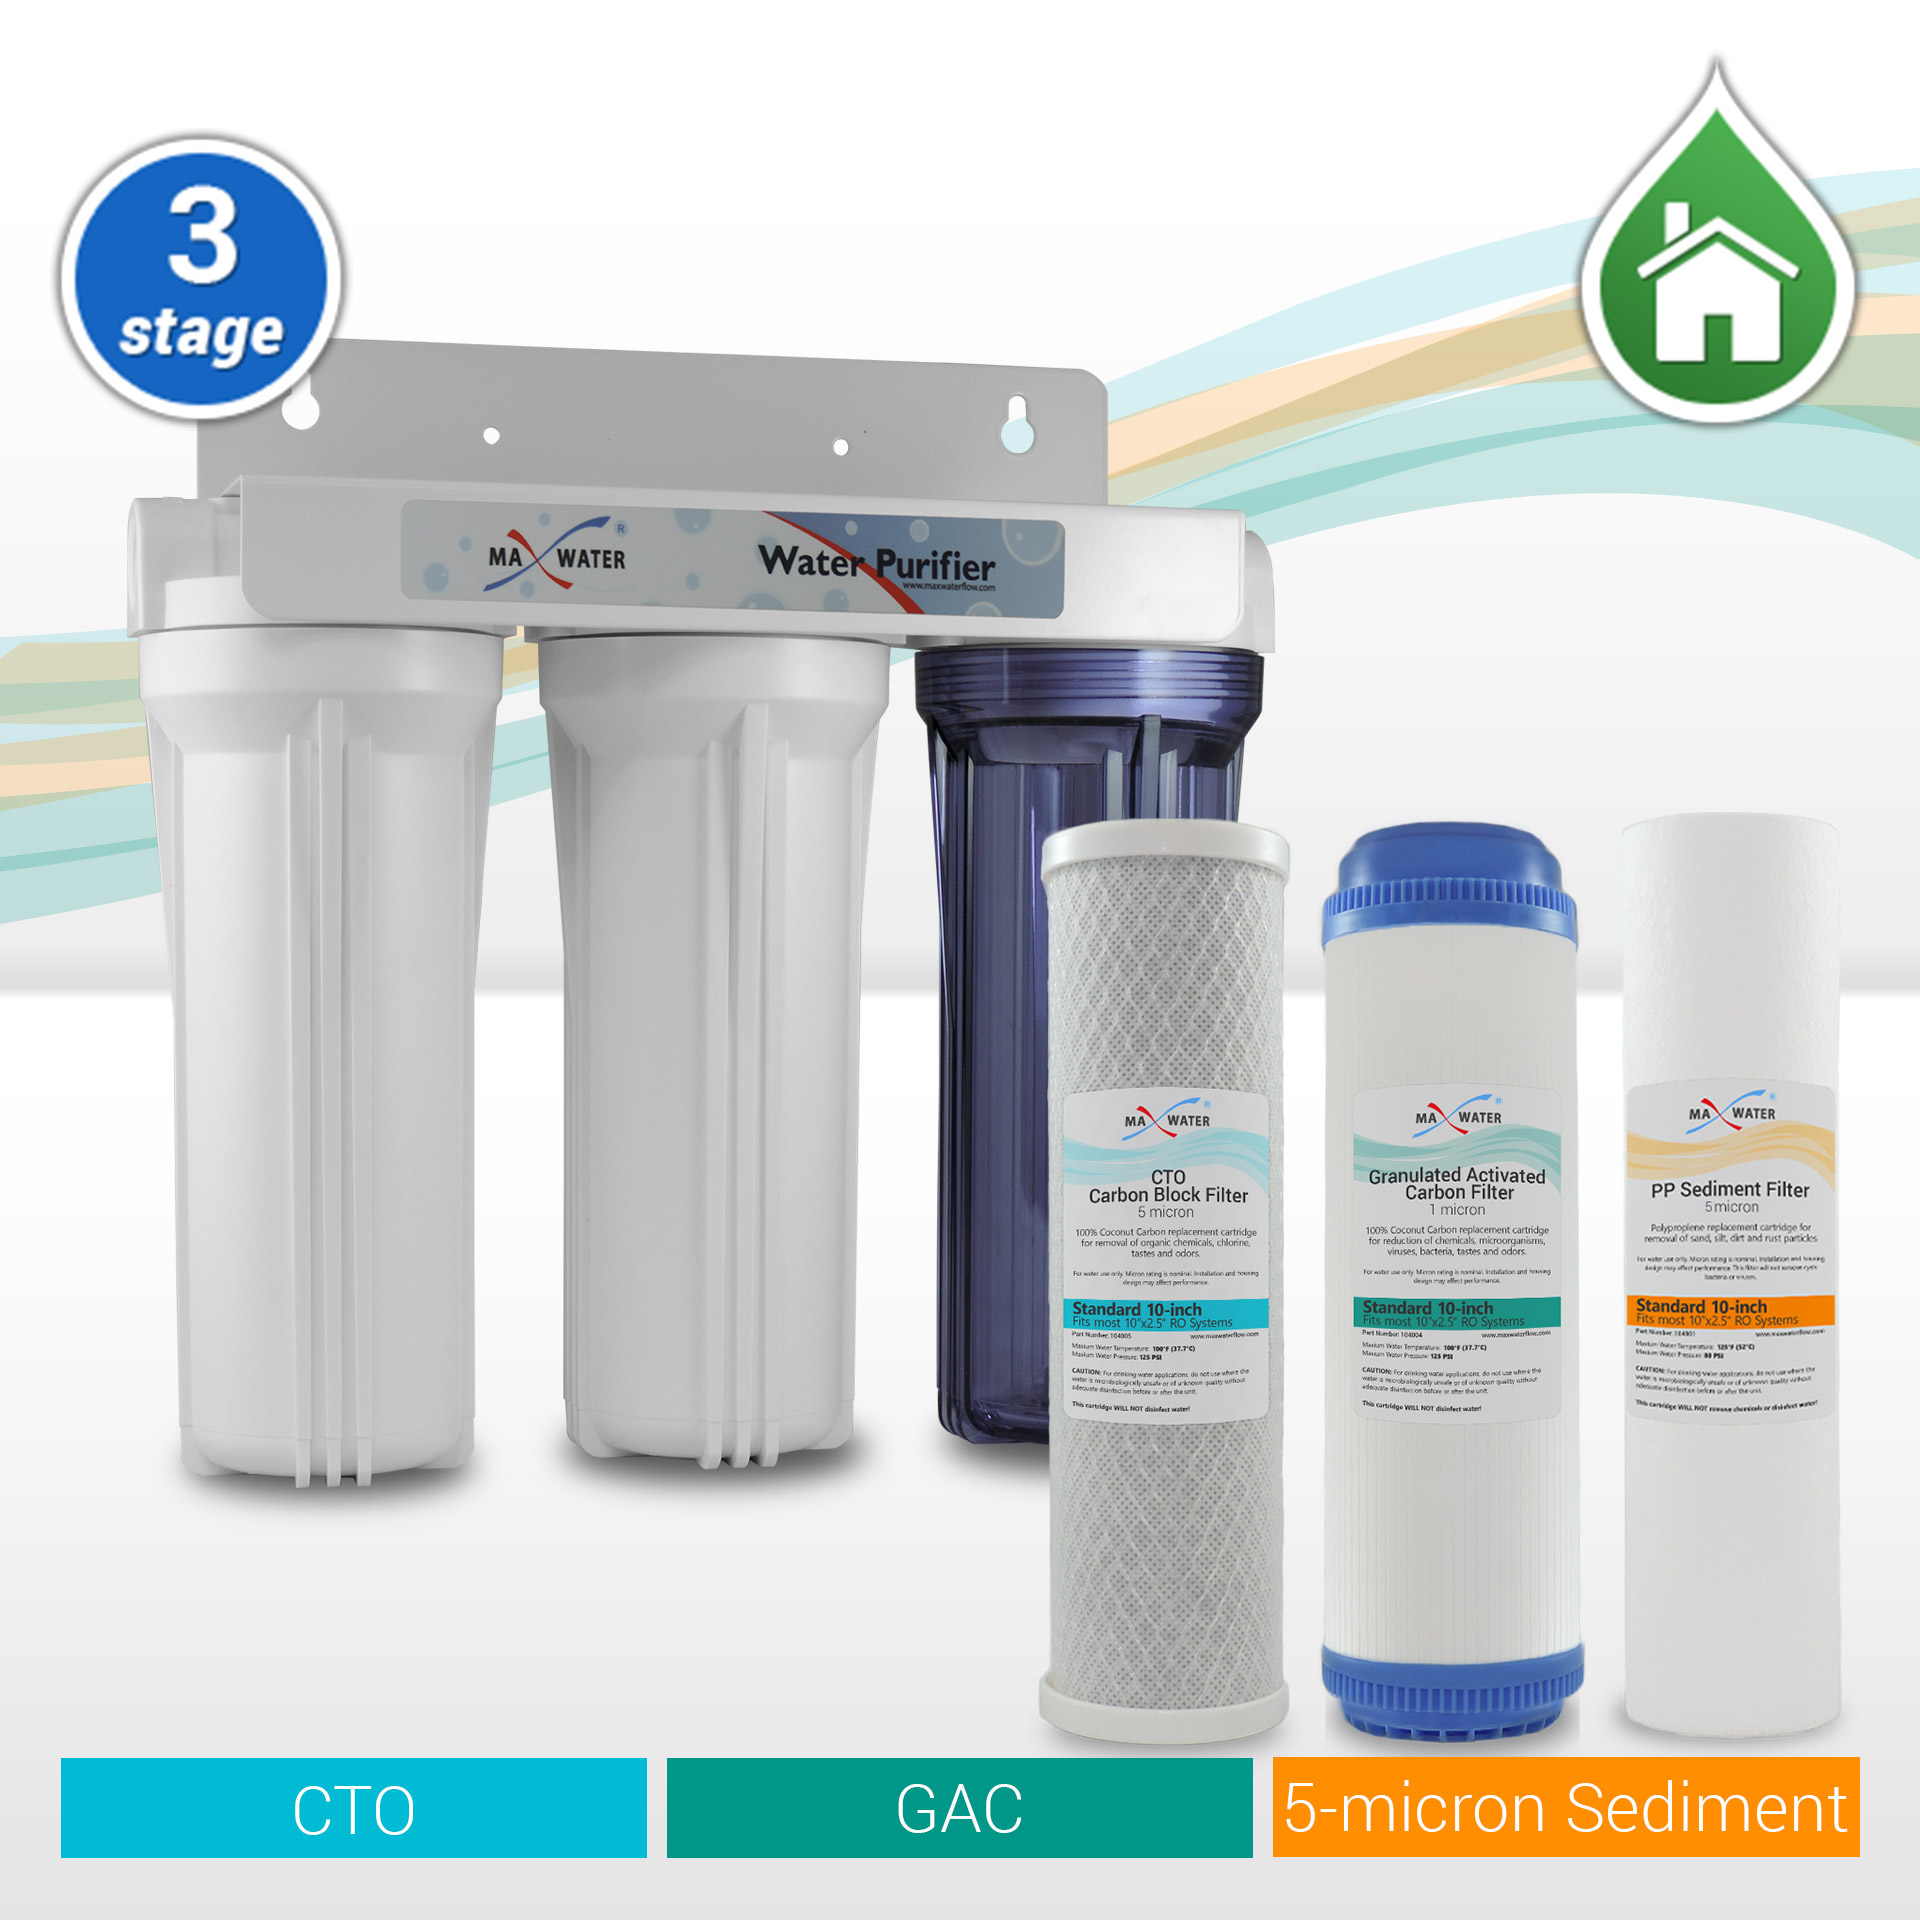 A Must Read On Best Home Water Filter Systems